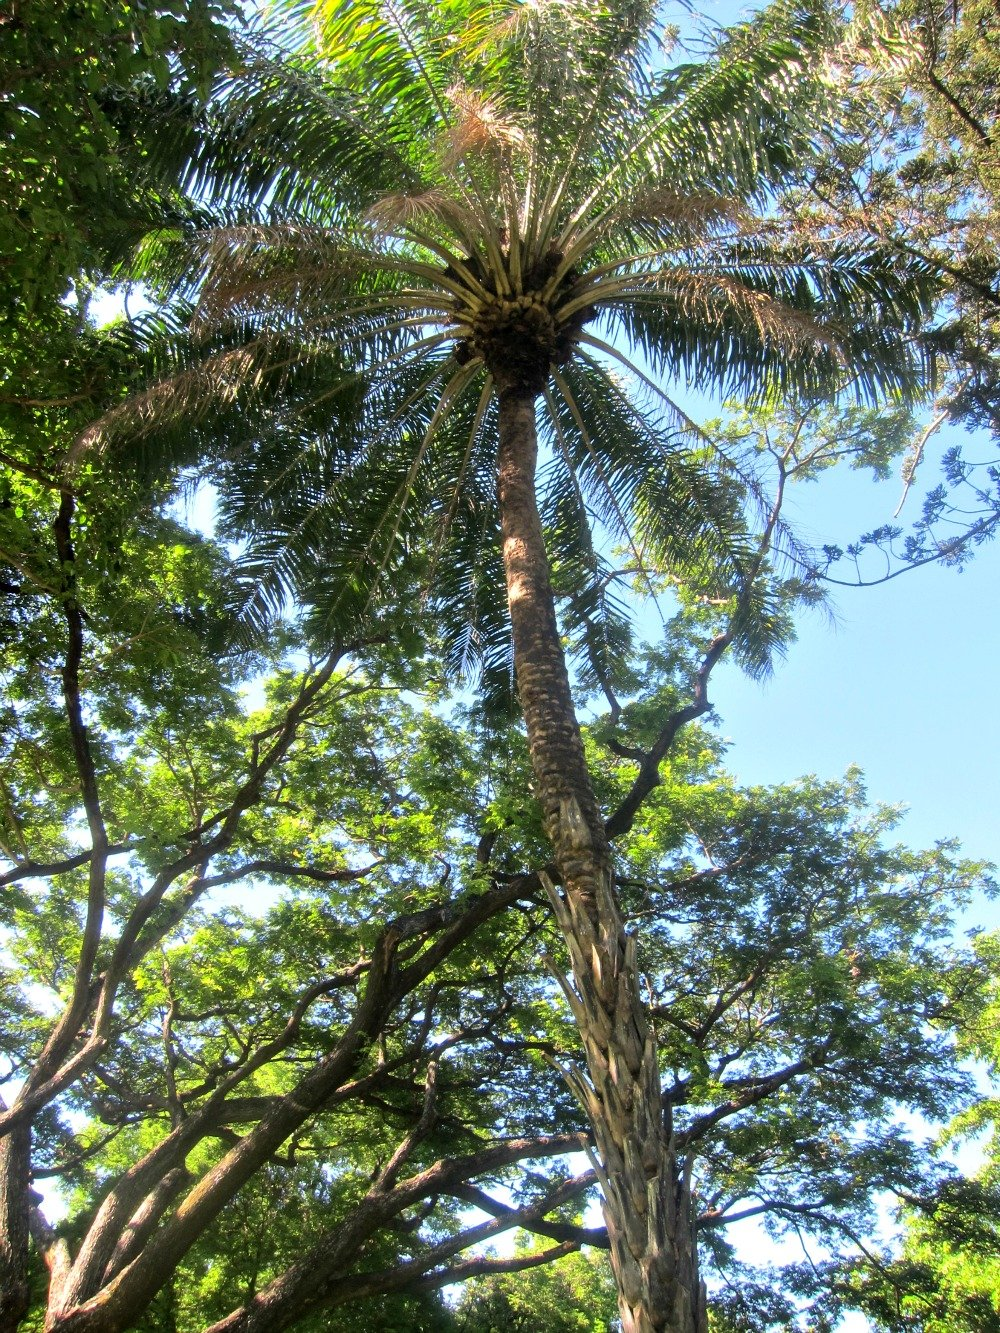 A tall palm tree in Queens Gardens, Townsville